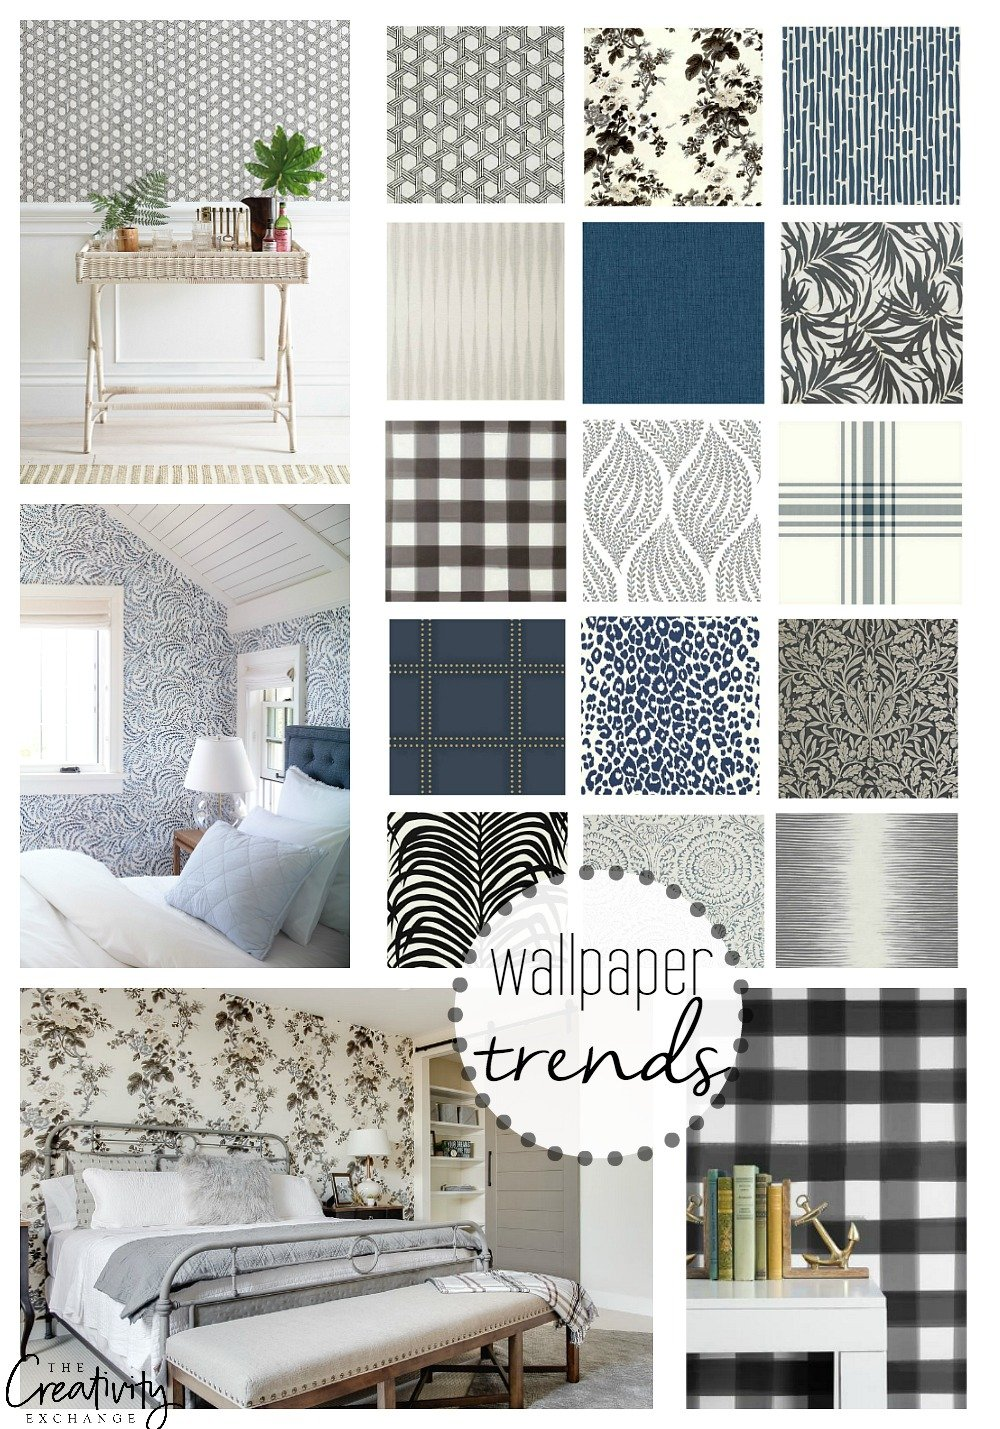 Wallpaper trends and creative ways to use them